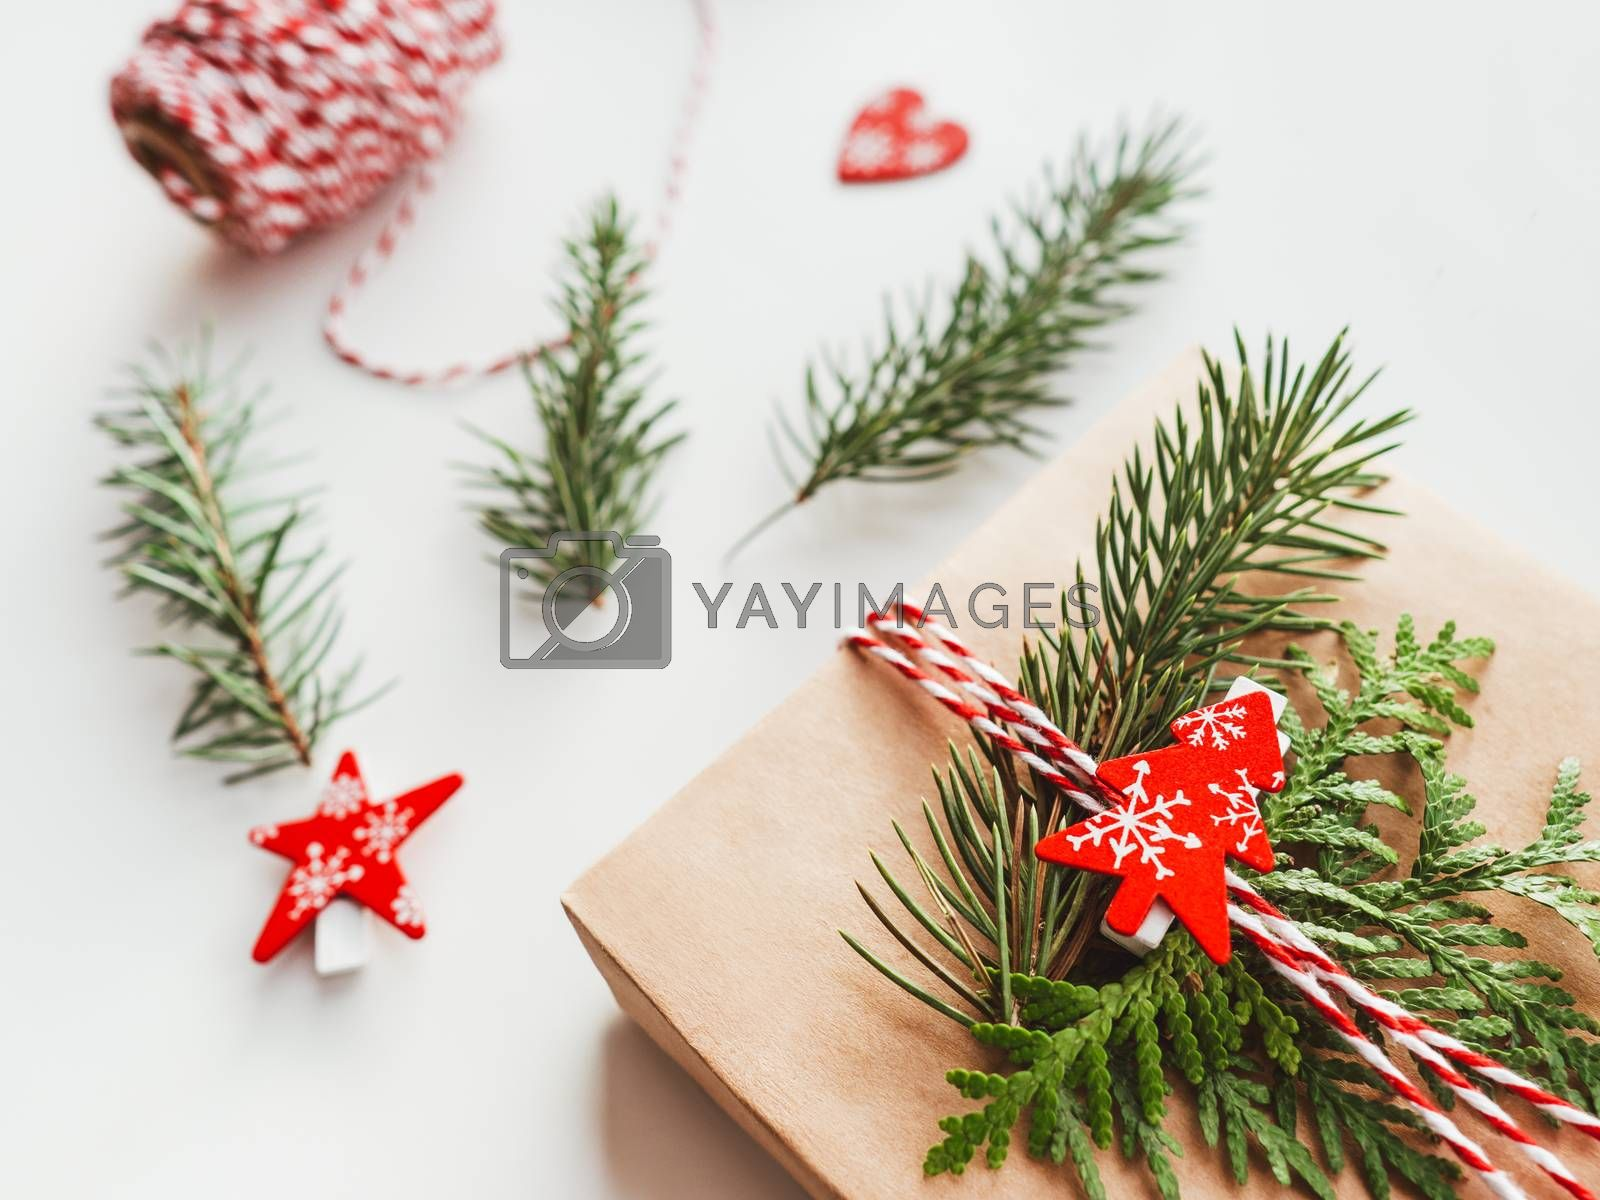 Royalty free image of Christmas DIY presents wrapped in craft paper with fir tree branches. Red decorations in shape of Christmas tree. New Year gifts. Festive background. Winter holiday spirit. by aksenovko